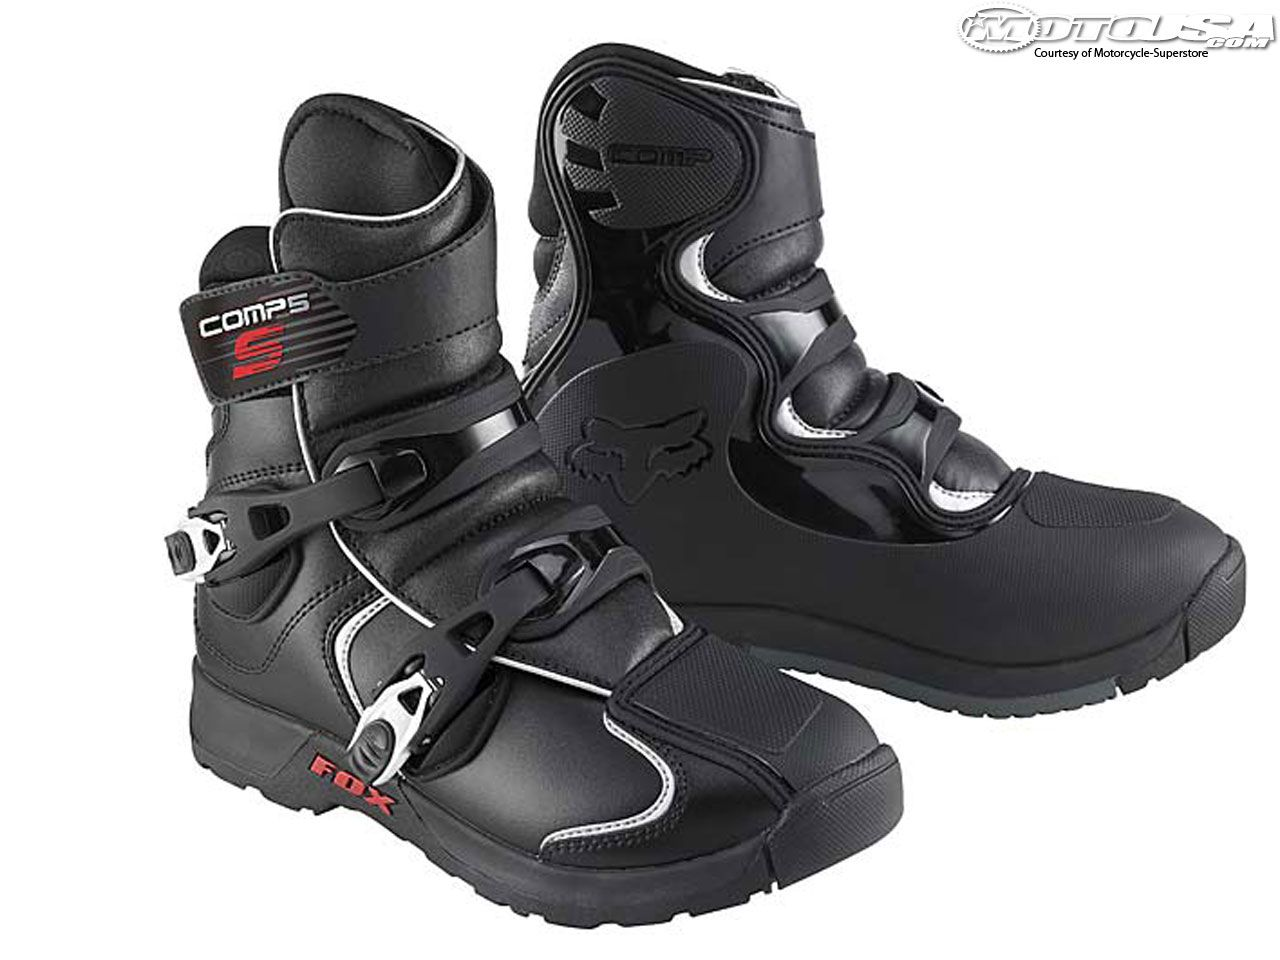 2008 Fox Racing Comp 5 Shorty Boots Boots Motorcycle Boots Fox Motocross Gear